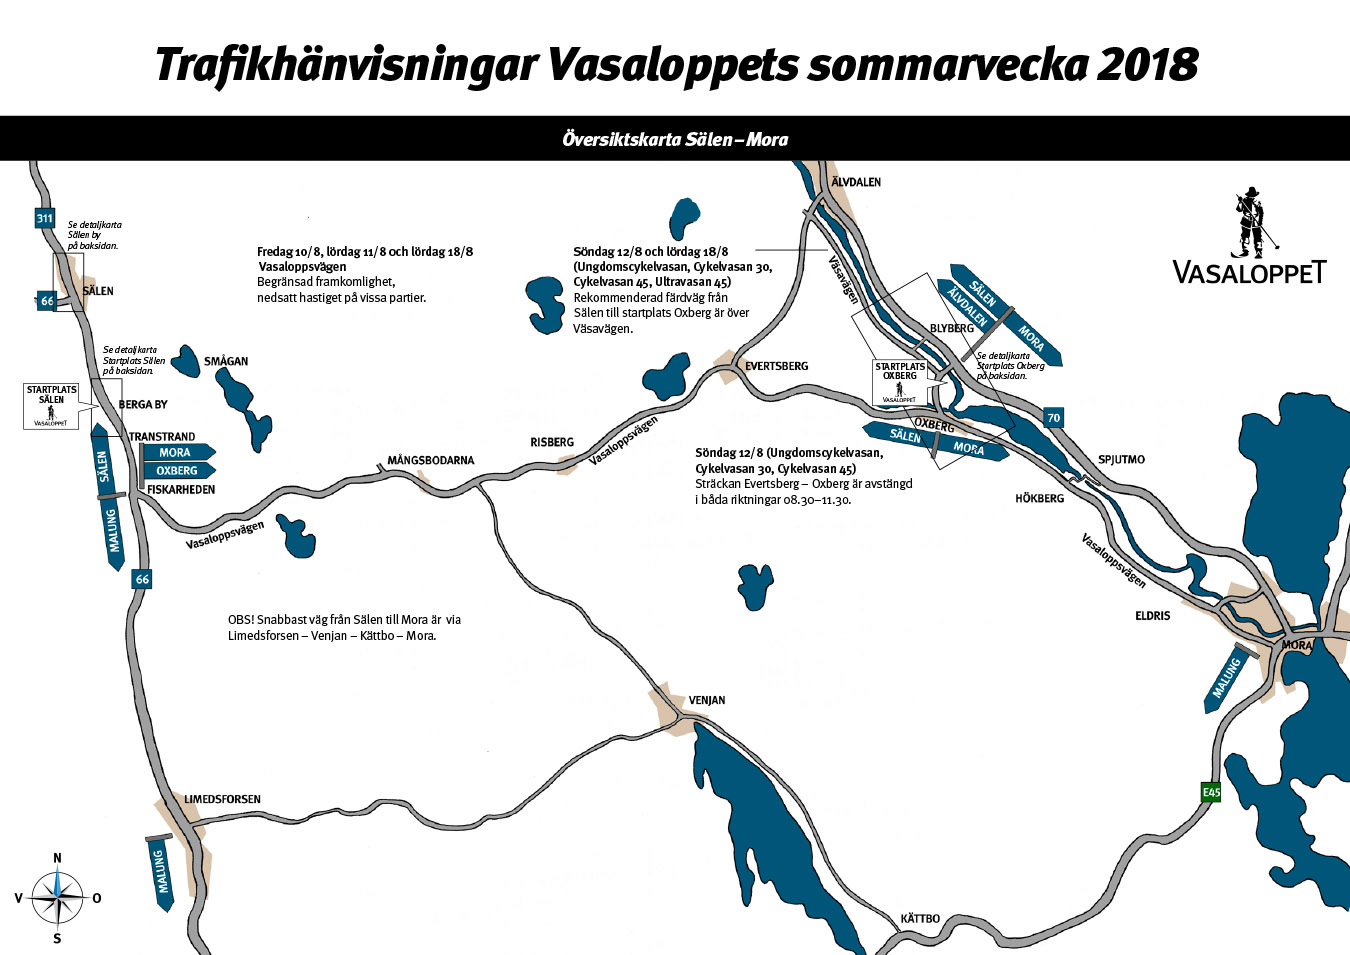 Traffic map Vasaloppet's Summer Week part 1 of 2